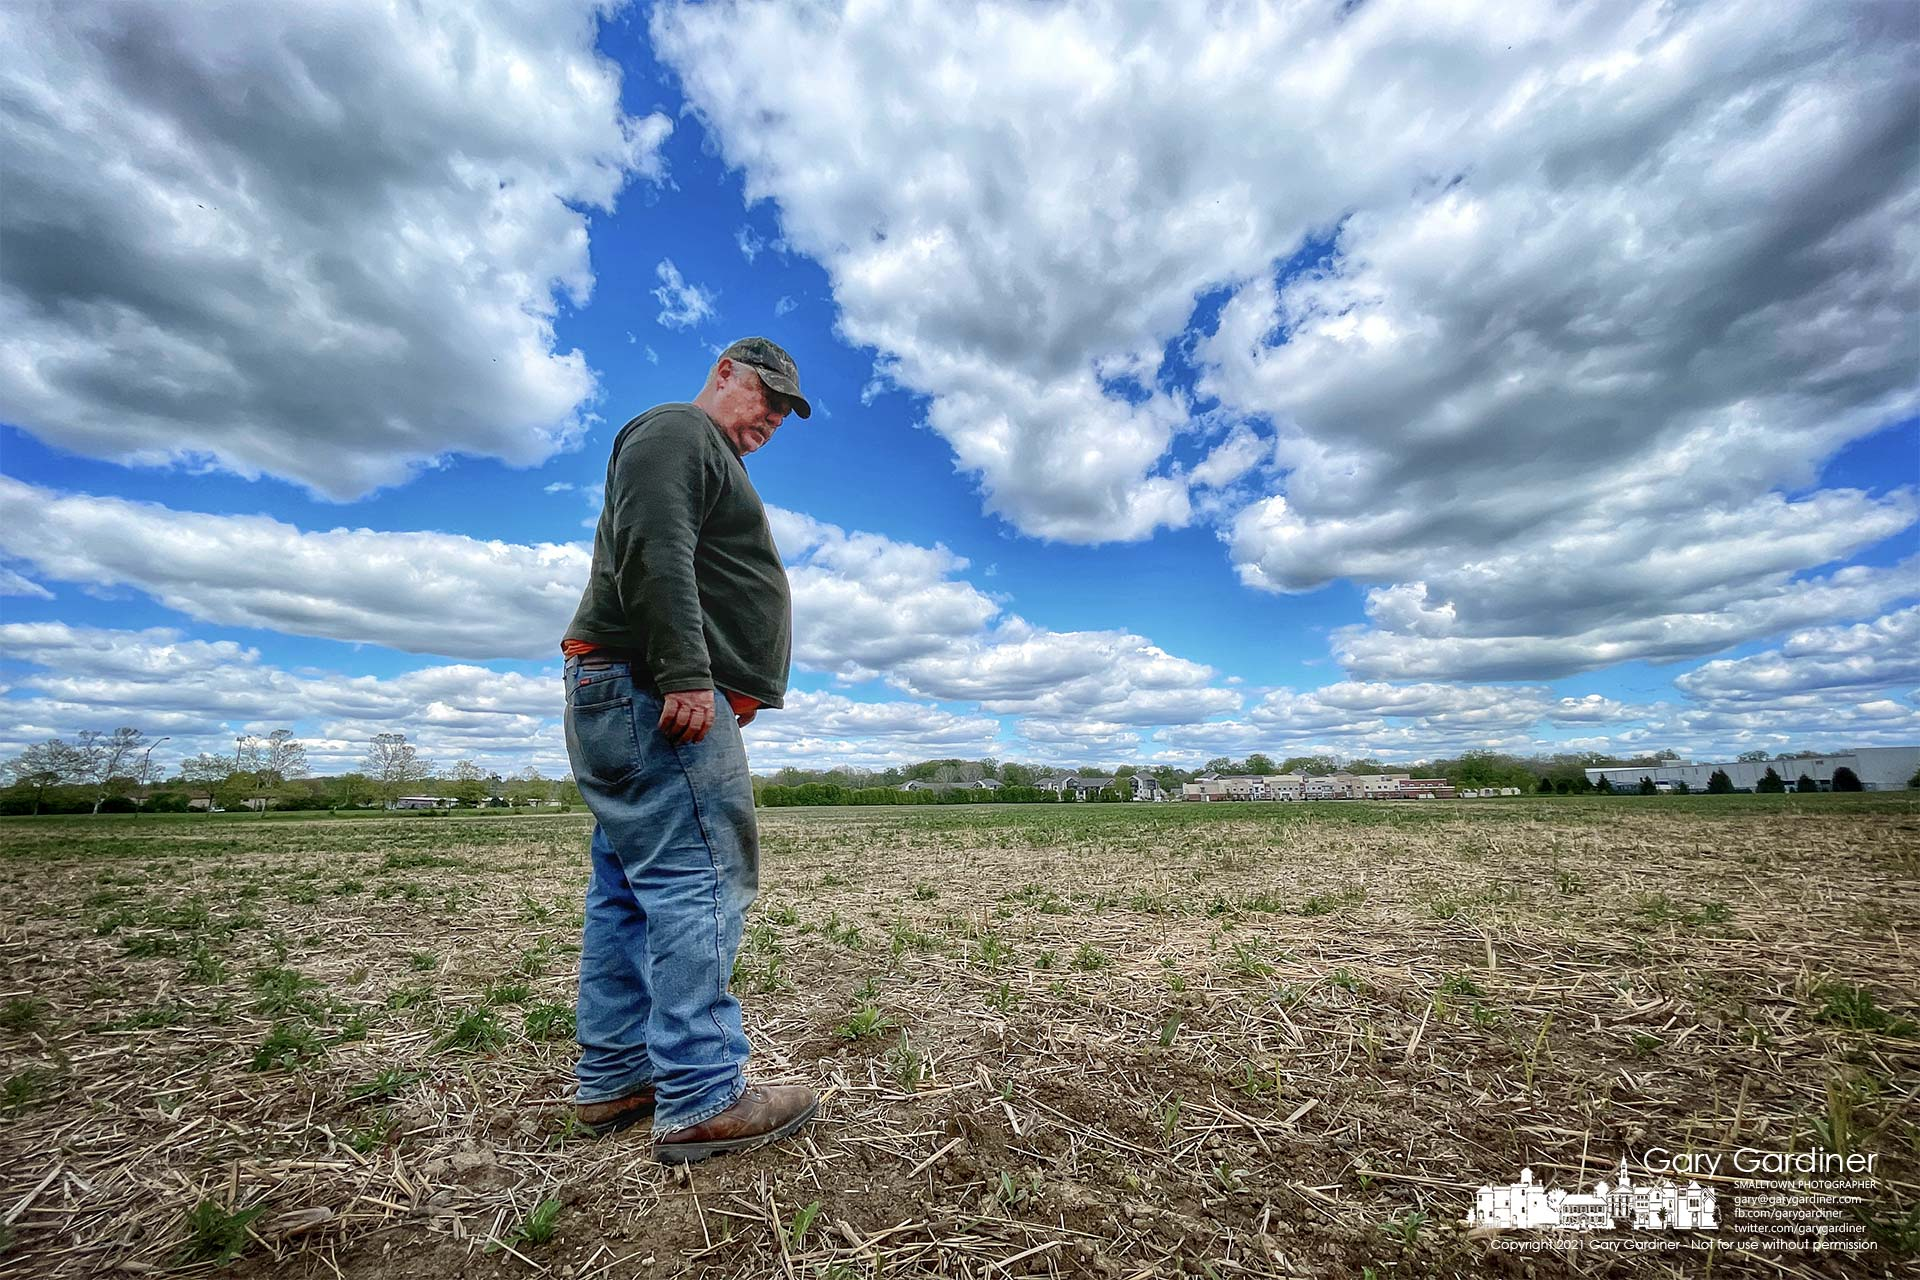 Kevin Scott surveys the Spring growth of weeds and the progress of the soybean seeds he planted two weeks ago on the fields at the Braun Farm. My Final Photo for May 12, 2021.